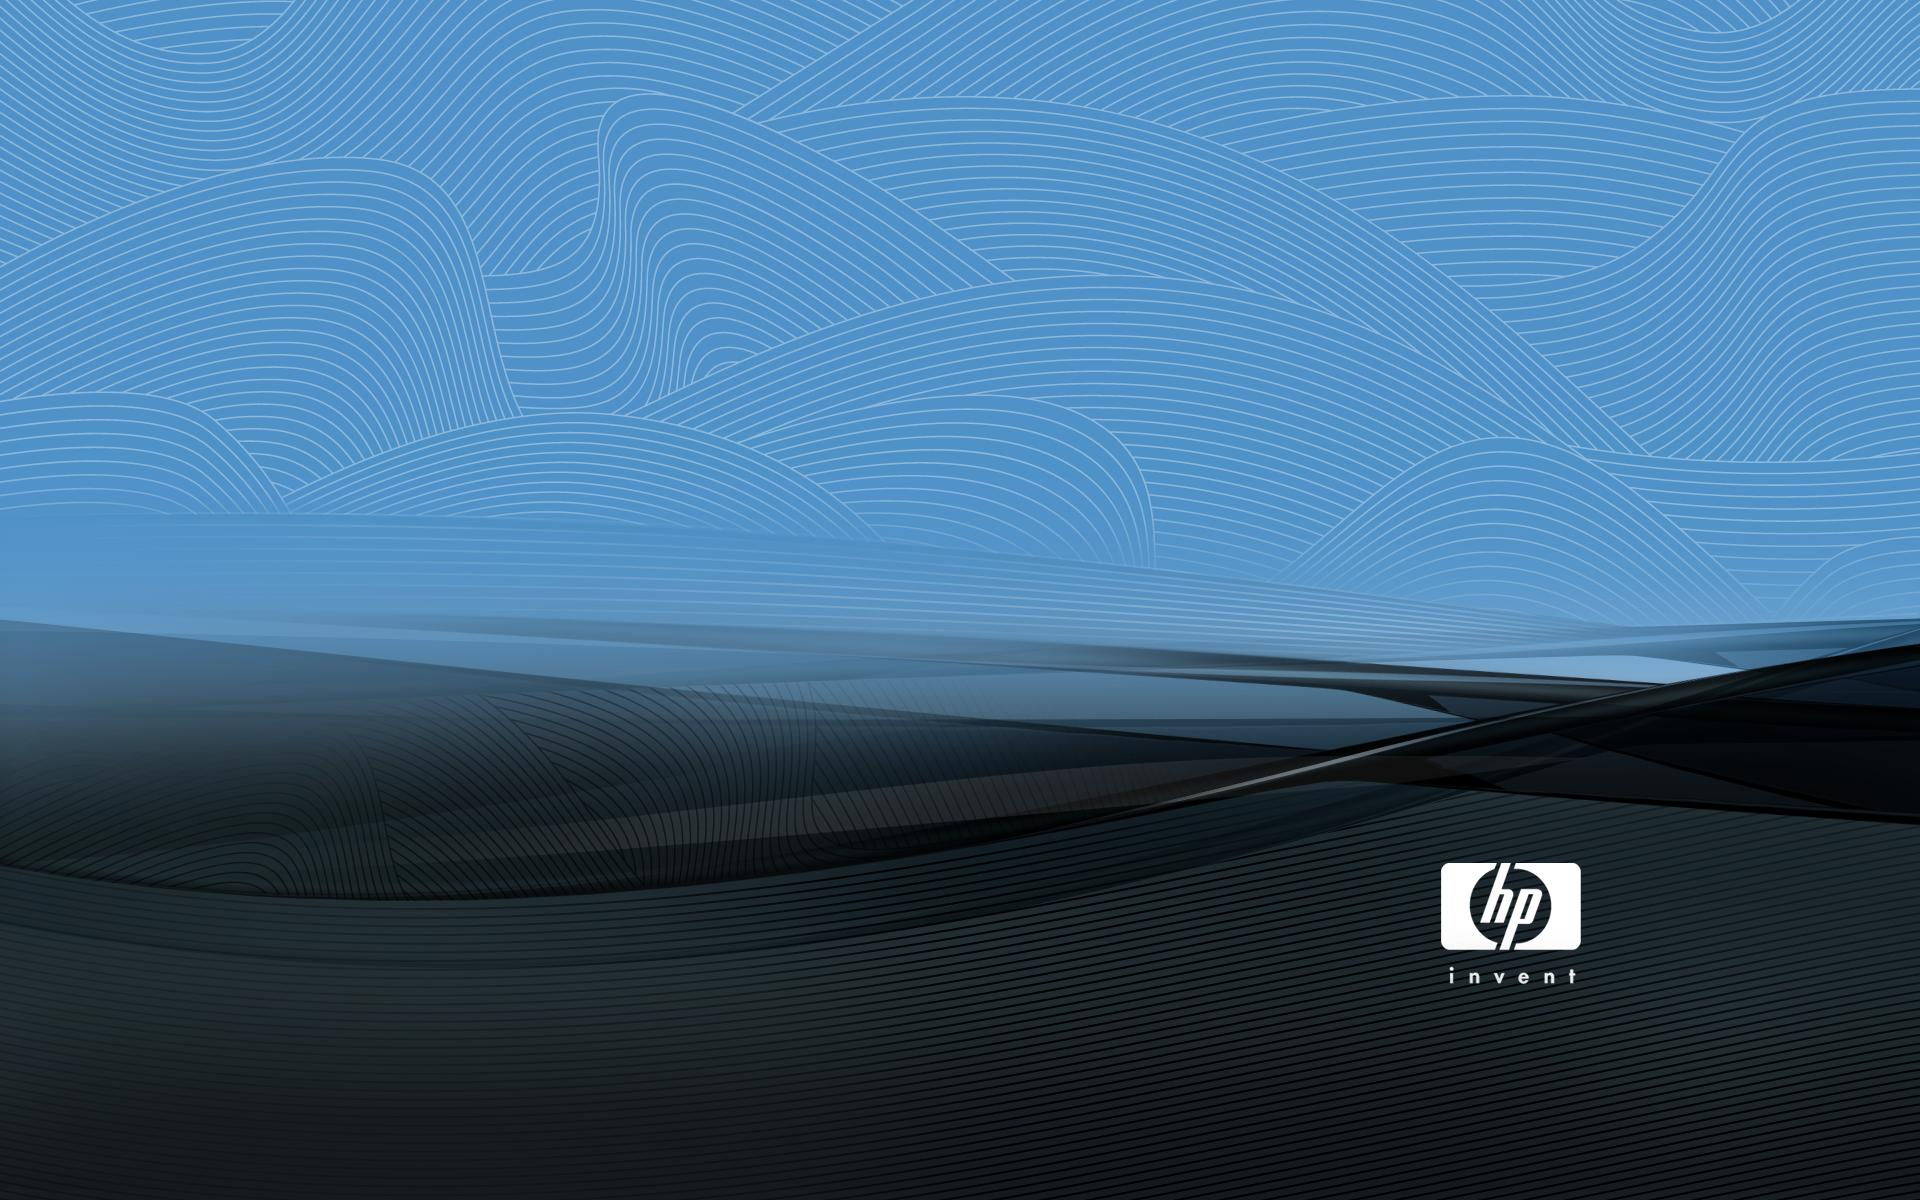 HP Pavilion Wallpapers 1920x1200